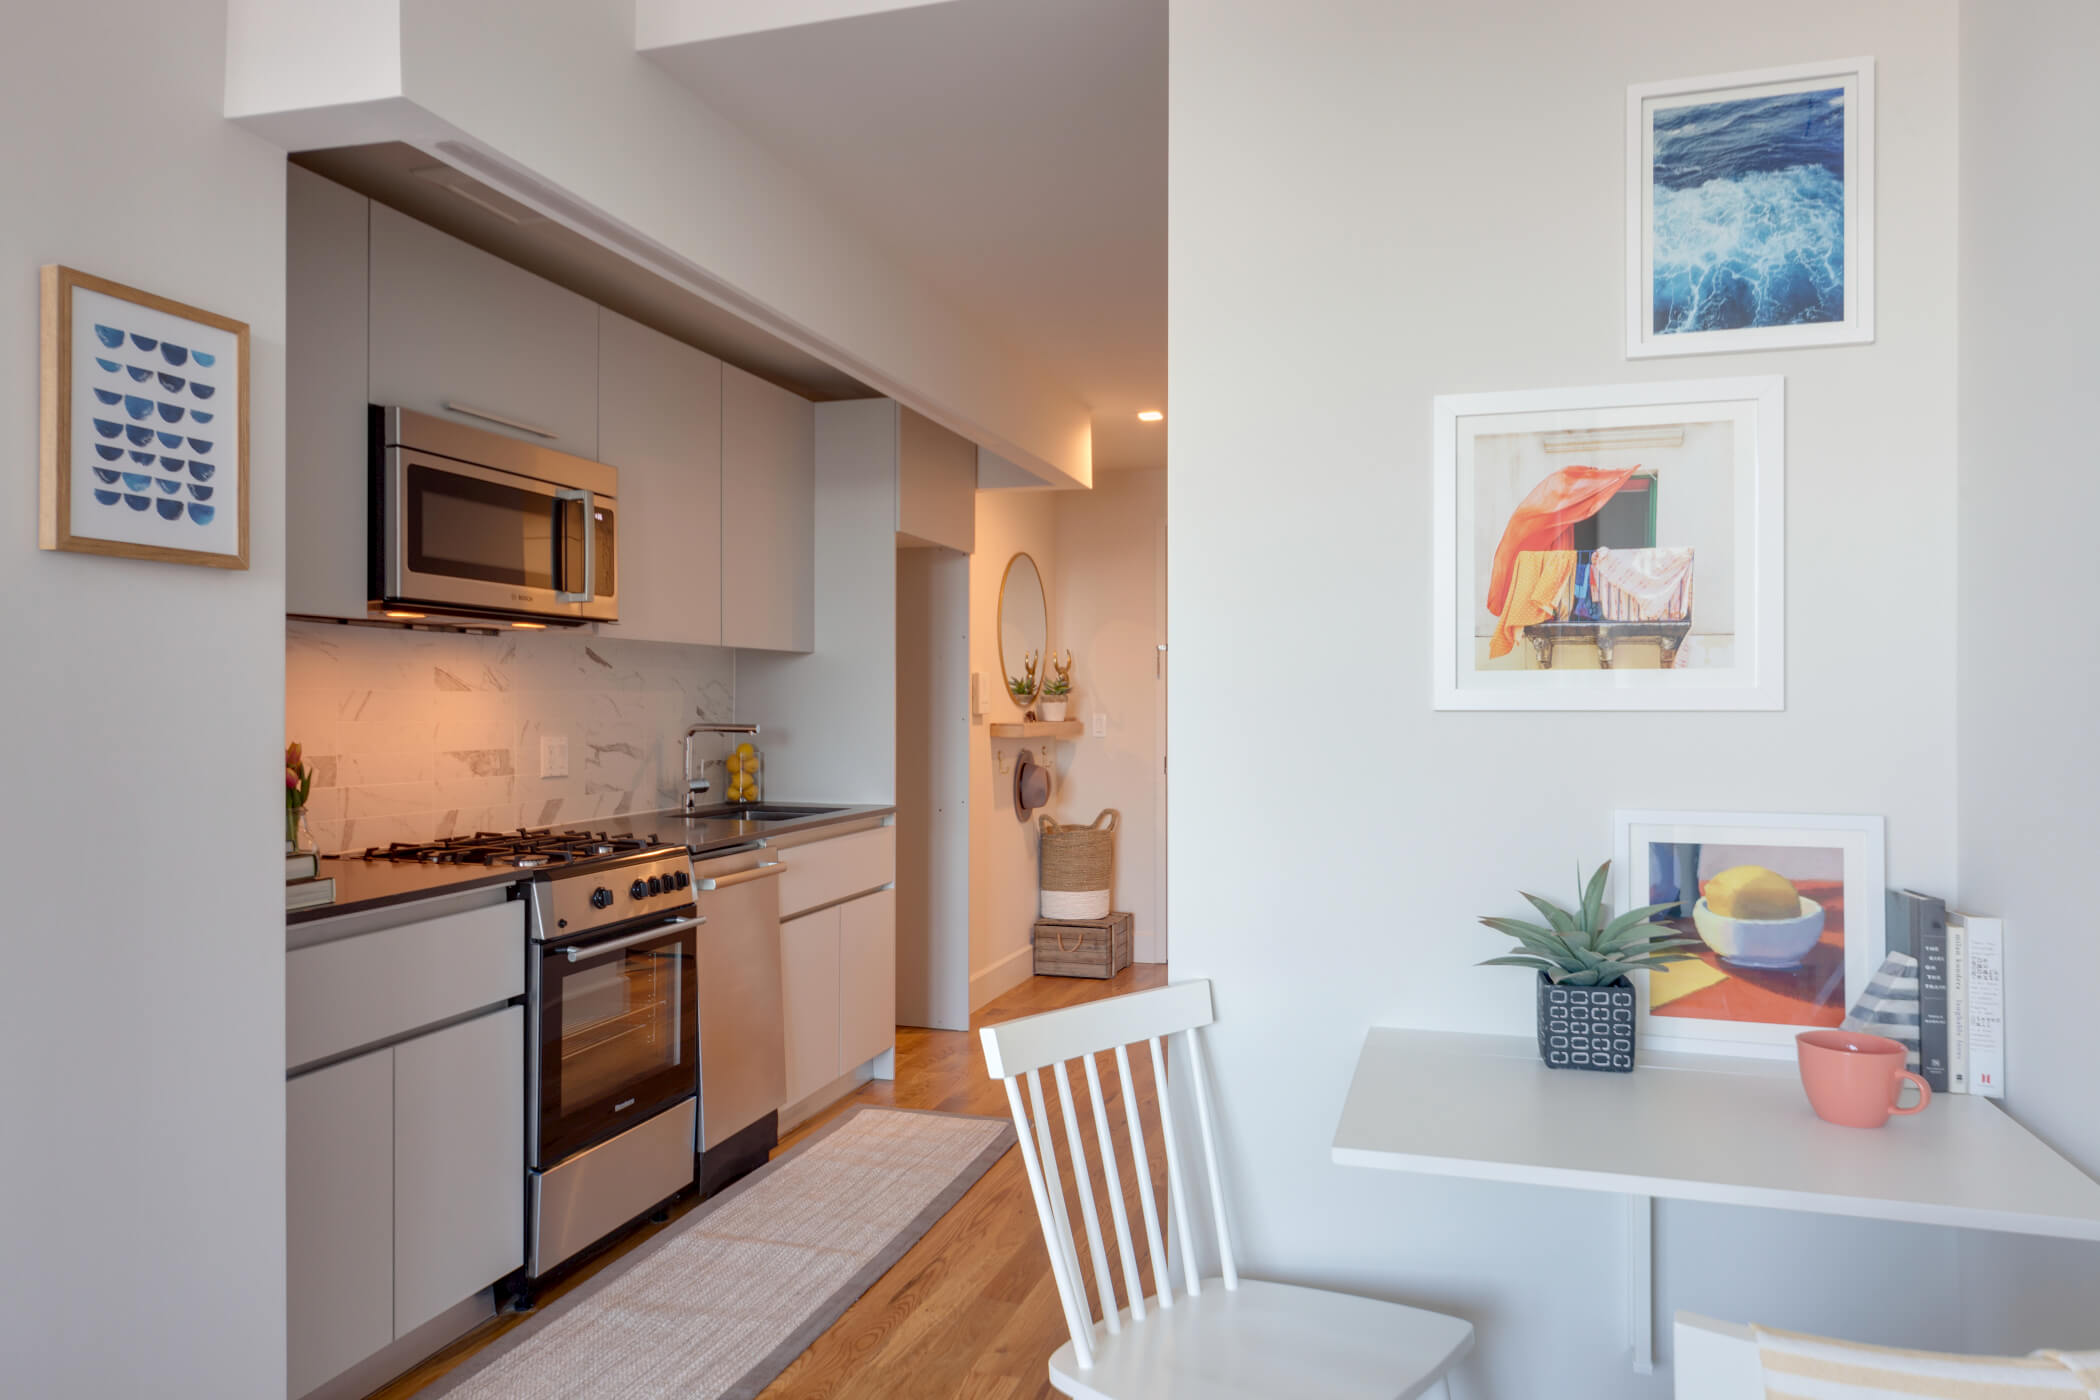 A furnished studio apartment at Common Baltic in Boerum Hill, Brooklyn.